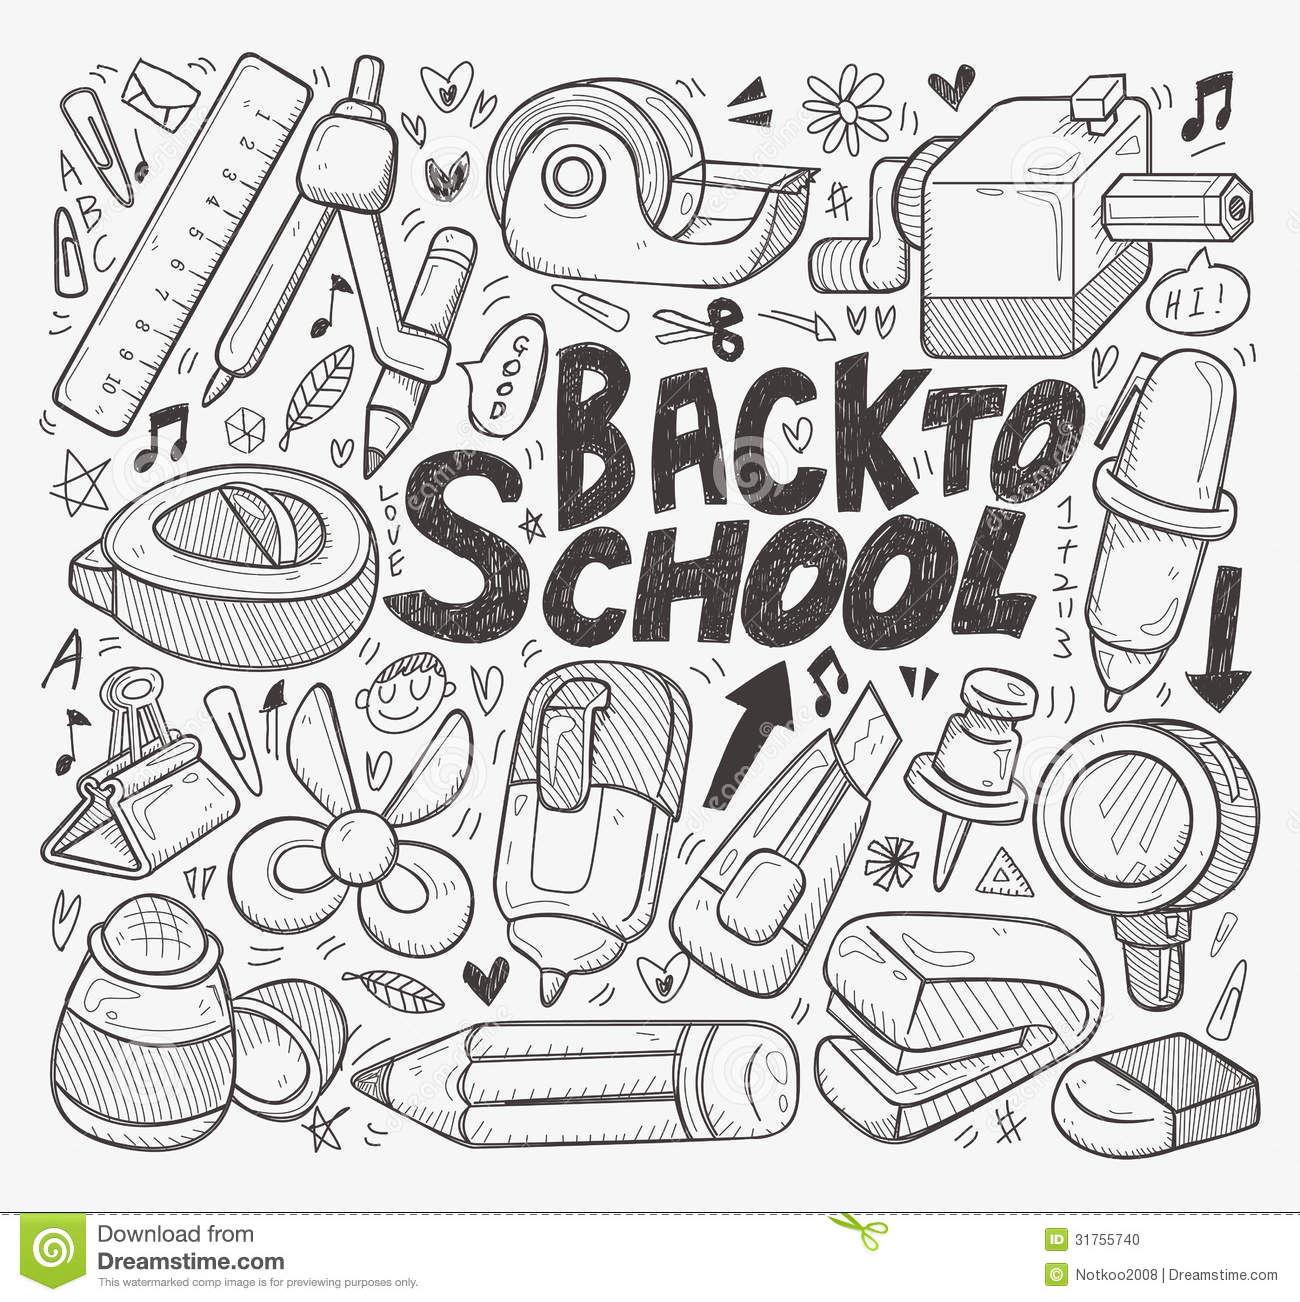 Black White Apple furthermore Stock Photo Doodle Back To School Element Cartoon Vector Illustration Image31755740 in addition Letter M Outline also Gambar Graffiti Gangster Drawing A Gangsta Mickey Mouse 2 Chicano Rap Music Youtube as well Next To 3 Coloring Page. on draw letter art